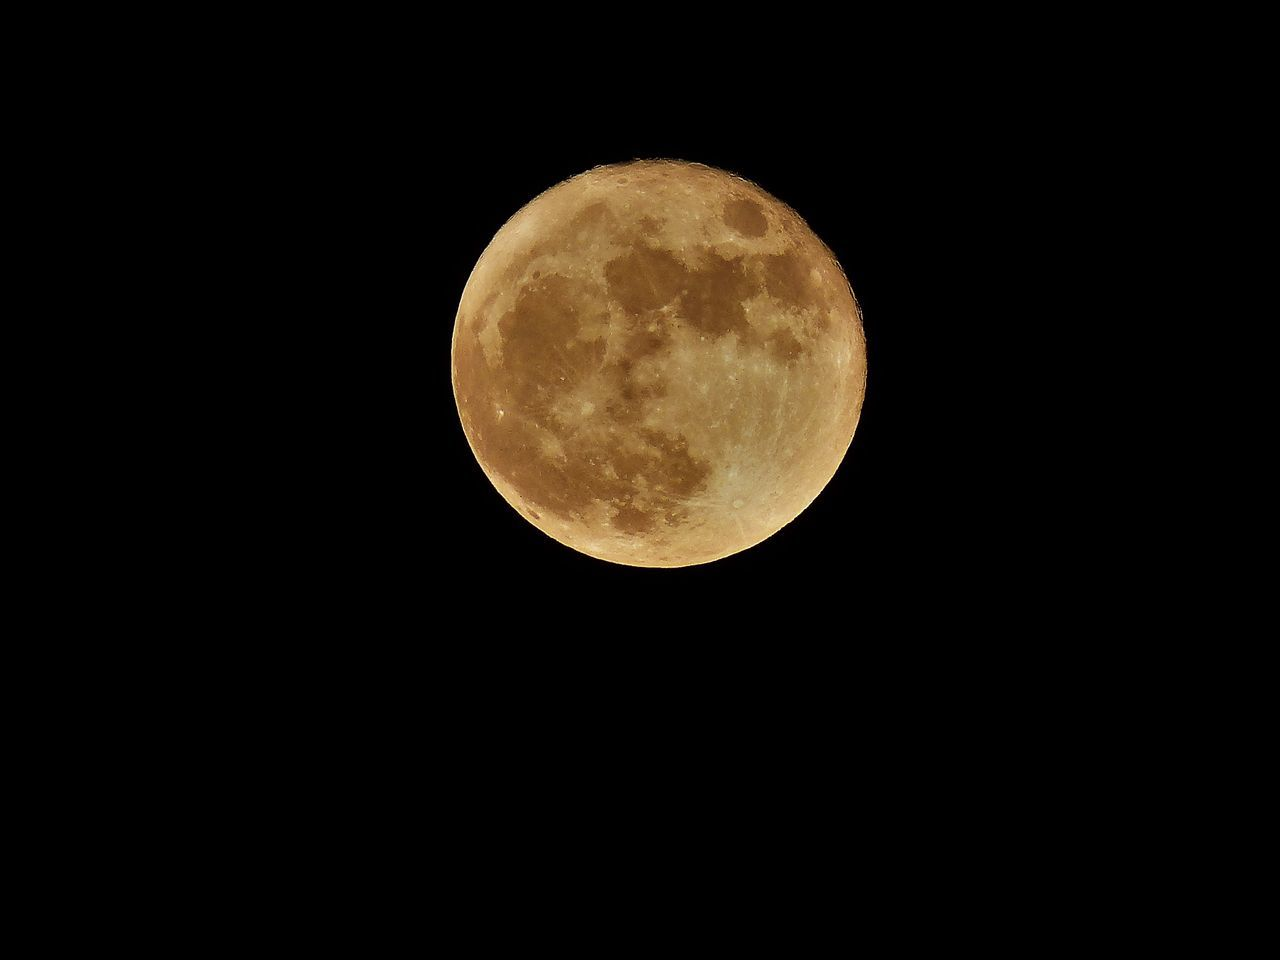 night, astronomy, moon, beauty in nature, moon surface, nature, scenics, outdoors, planetary moon, low angle view, tranquil scene, no people, tranquility, space exploration, sky, space, clear sky, close-up, satellite view